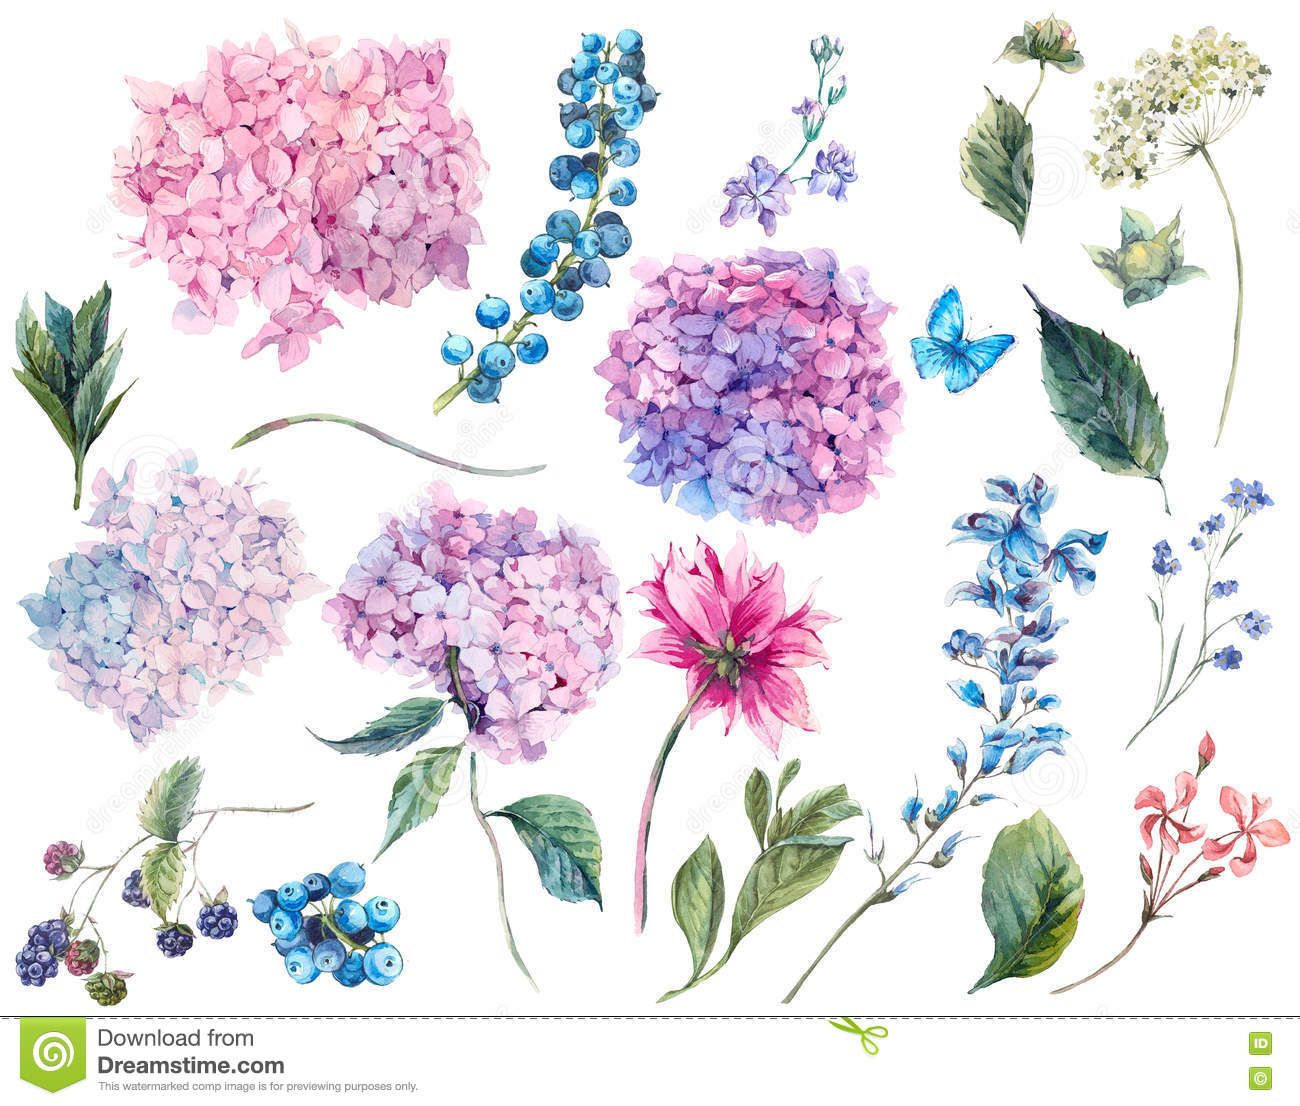 Set Vintage Watercolor Elements Of Hydrangea Stock Photo Image Of Branch Nature 73695310 Hydrangea Tattoo Small Flower Tattoos Flower Tattoos